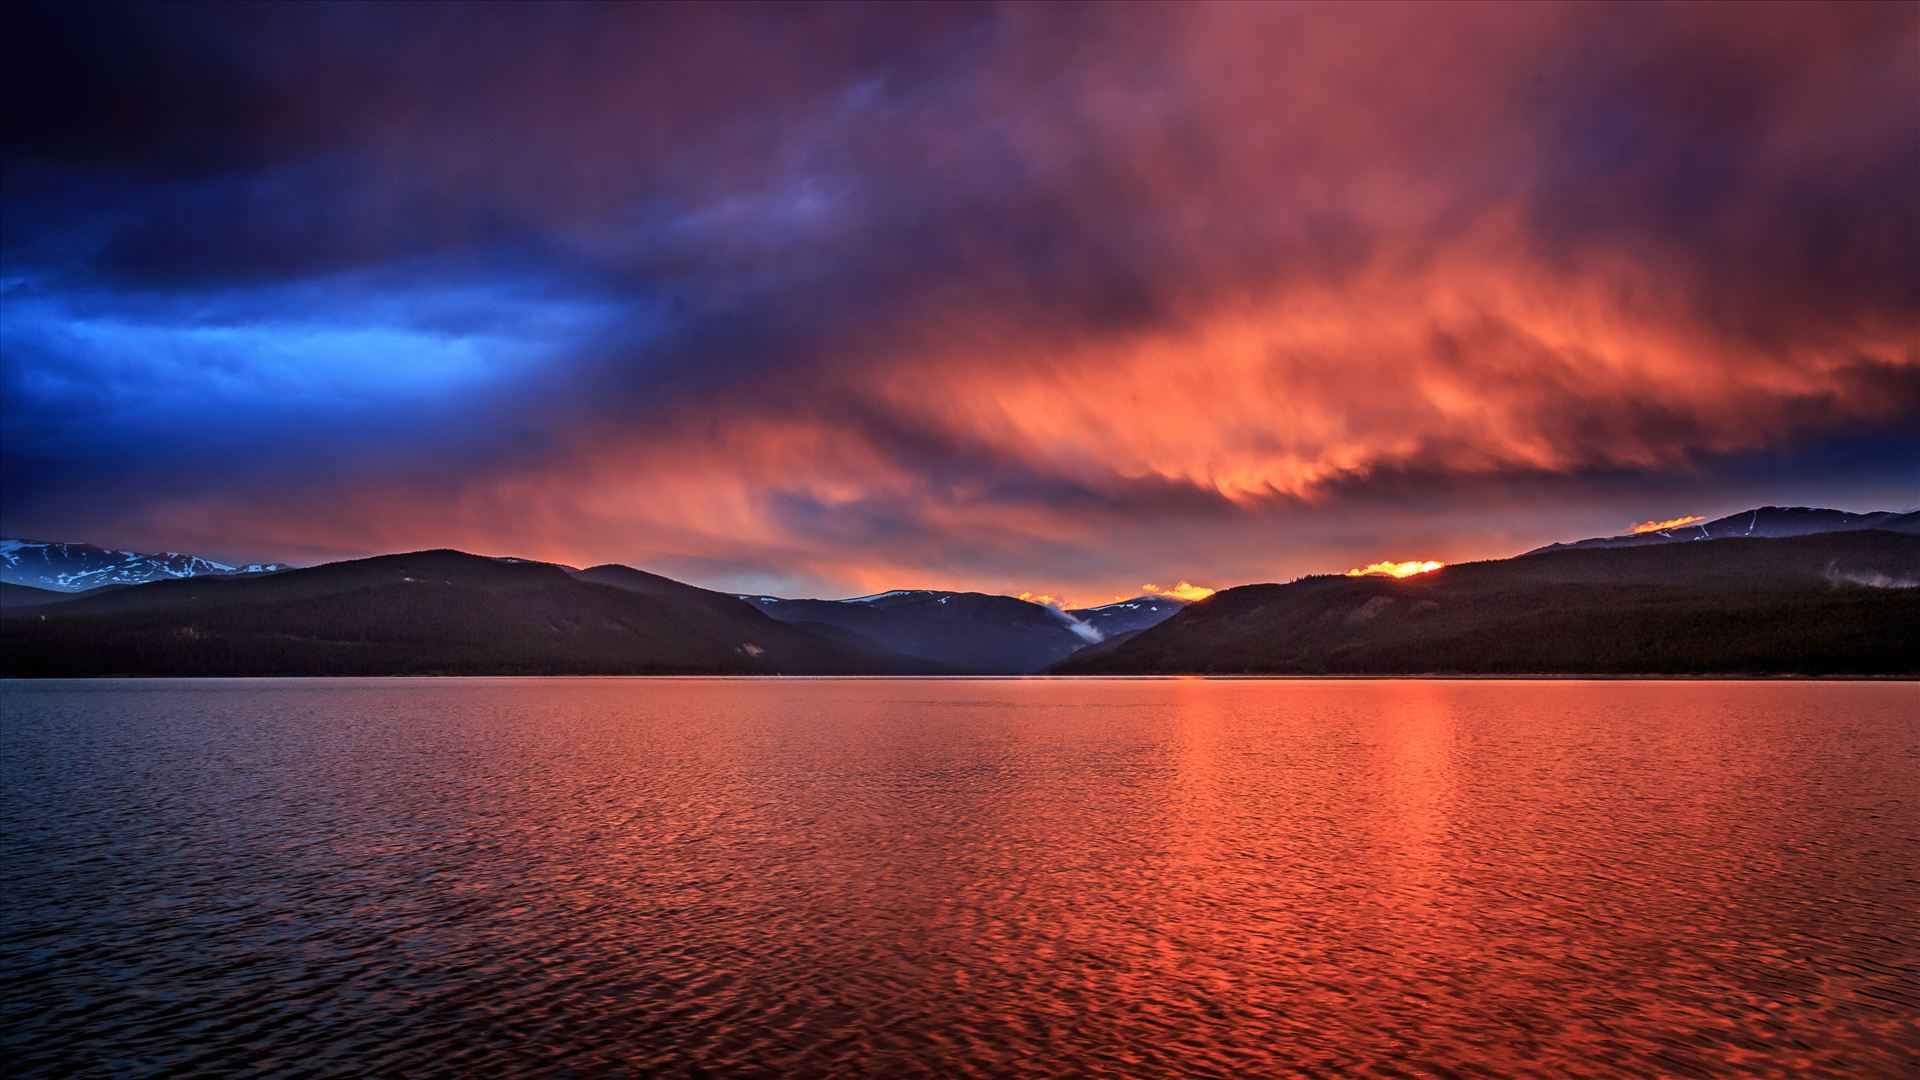 Sunset on Turquoise II - Sunset on the calm protected waters of Turqouise Lake, Leadville Colorado. by D Scott Smith